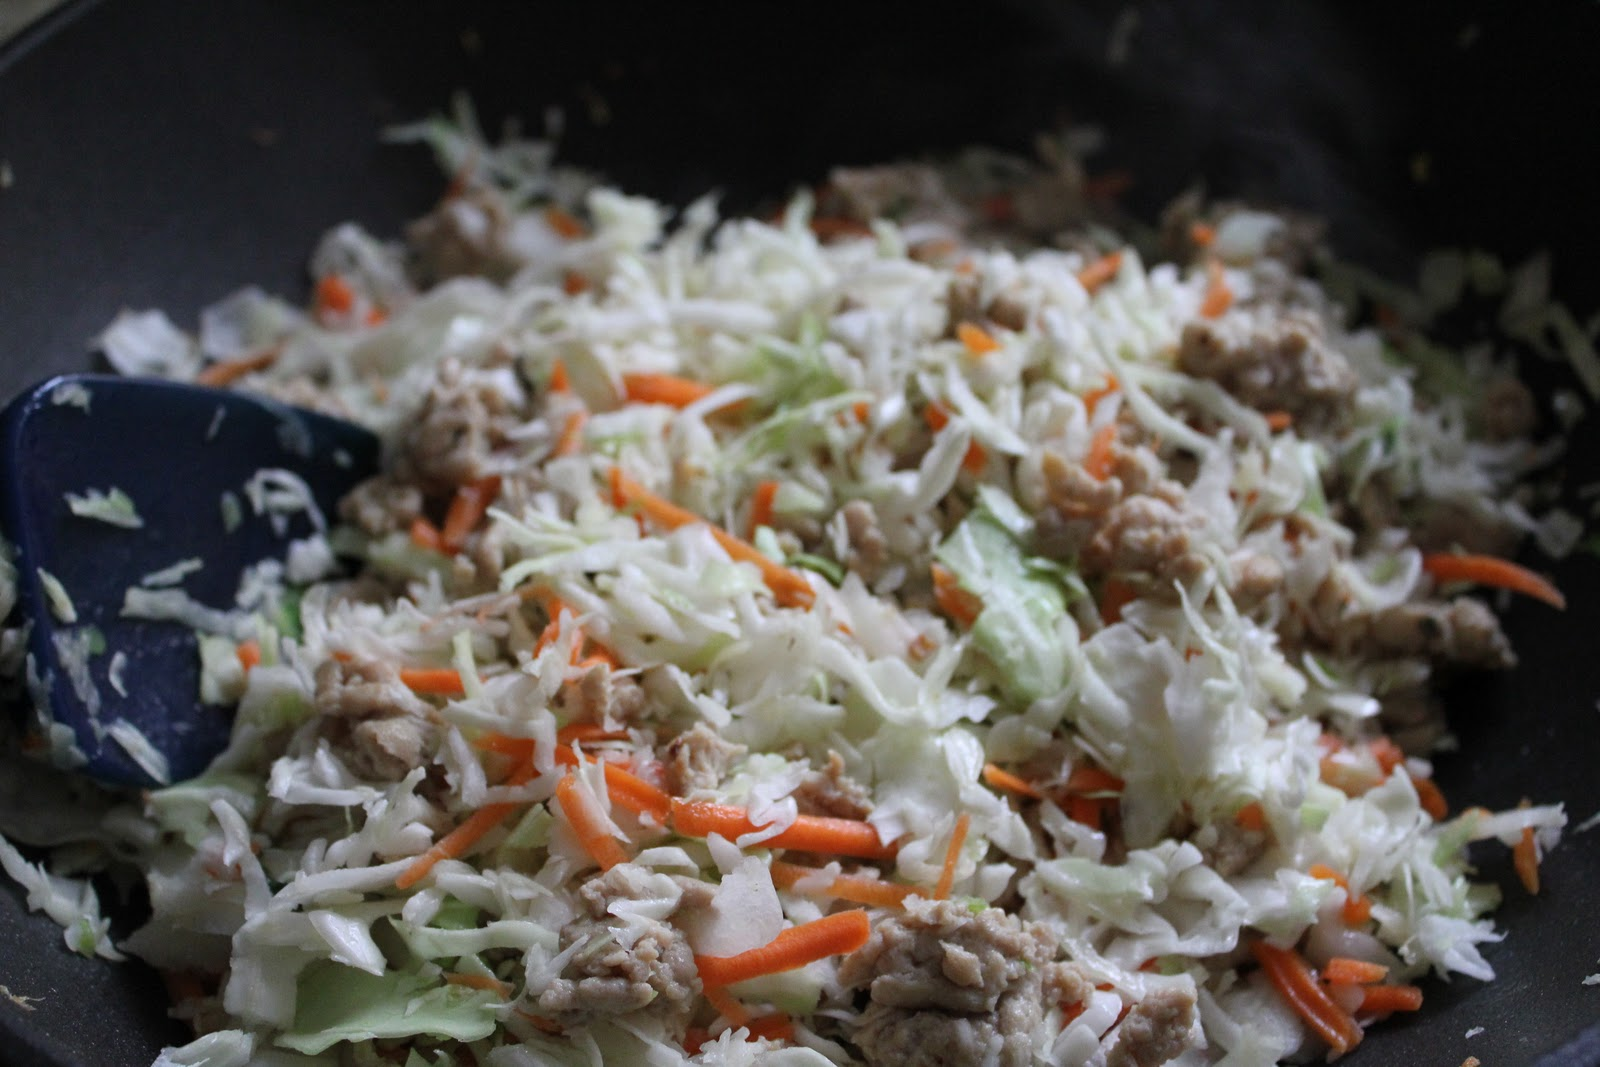 Stir fry coleslaw and meat until combined